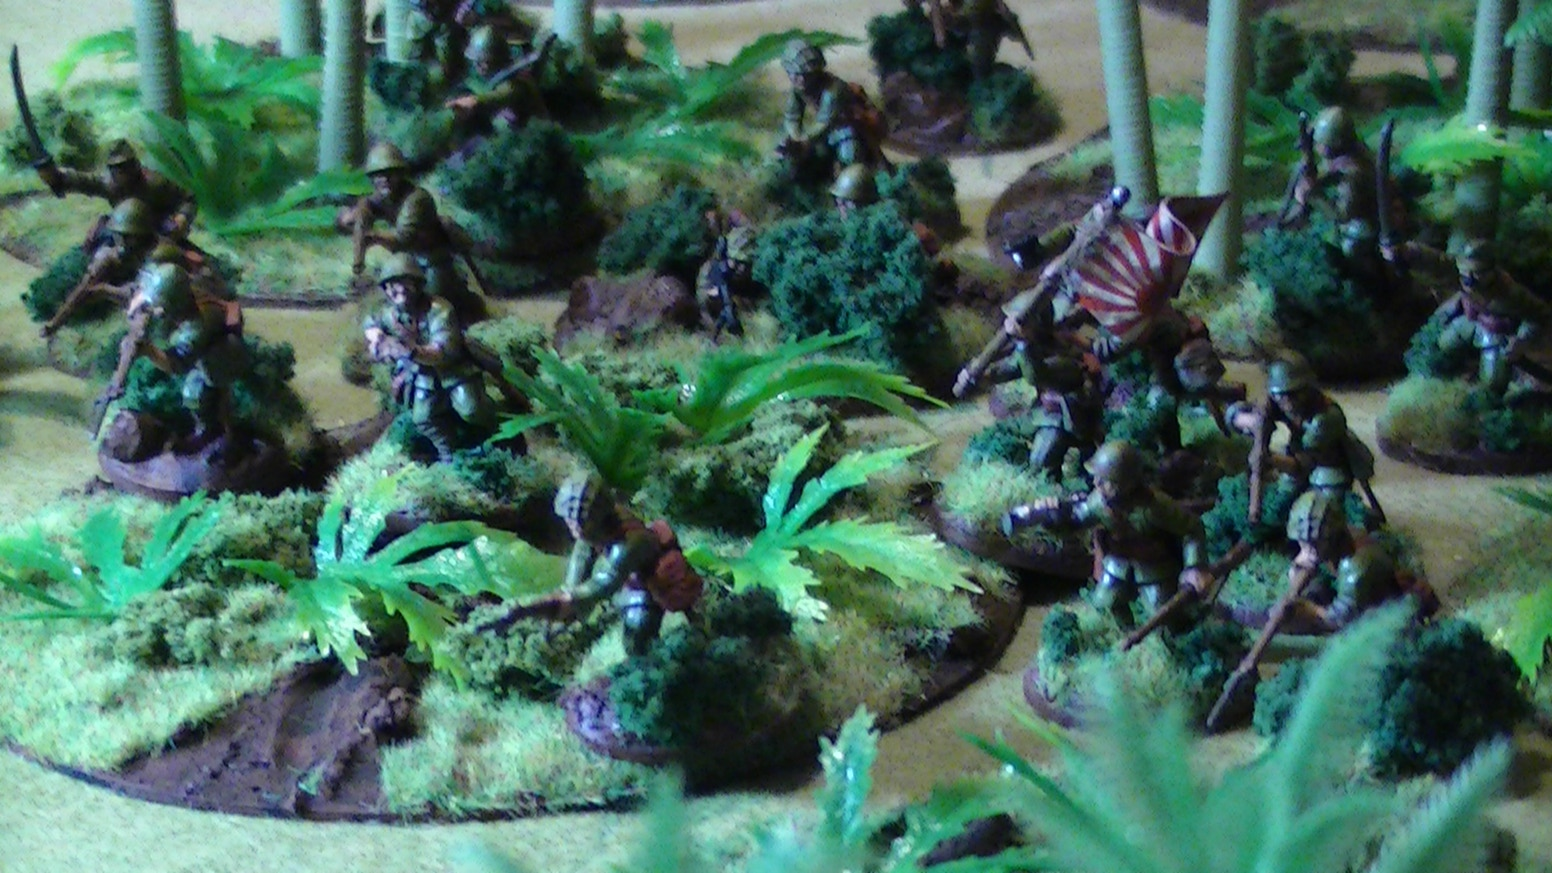 Ready to Play Jungle Terrain in 28mm for game systems such as Bolt Action or Chain of command set in the jungles of Burma or Indo-China